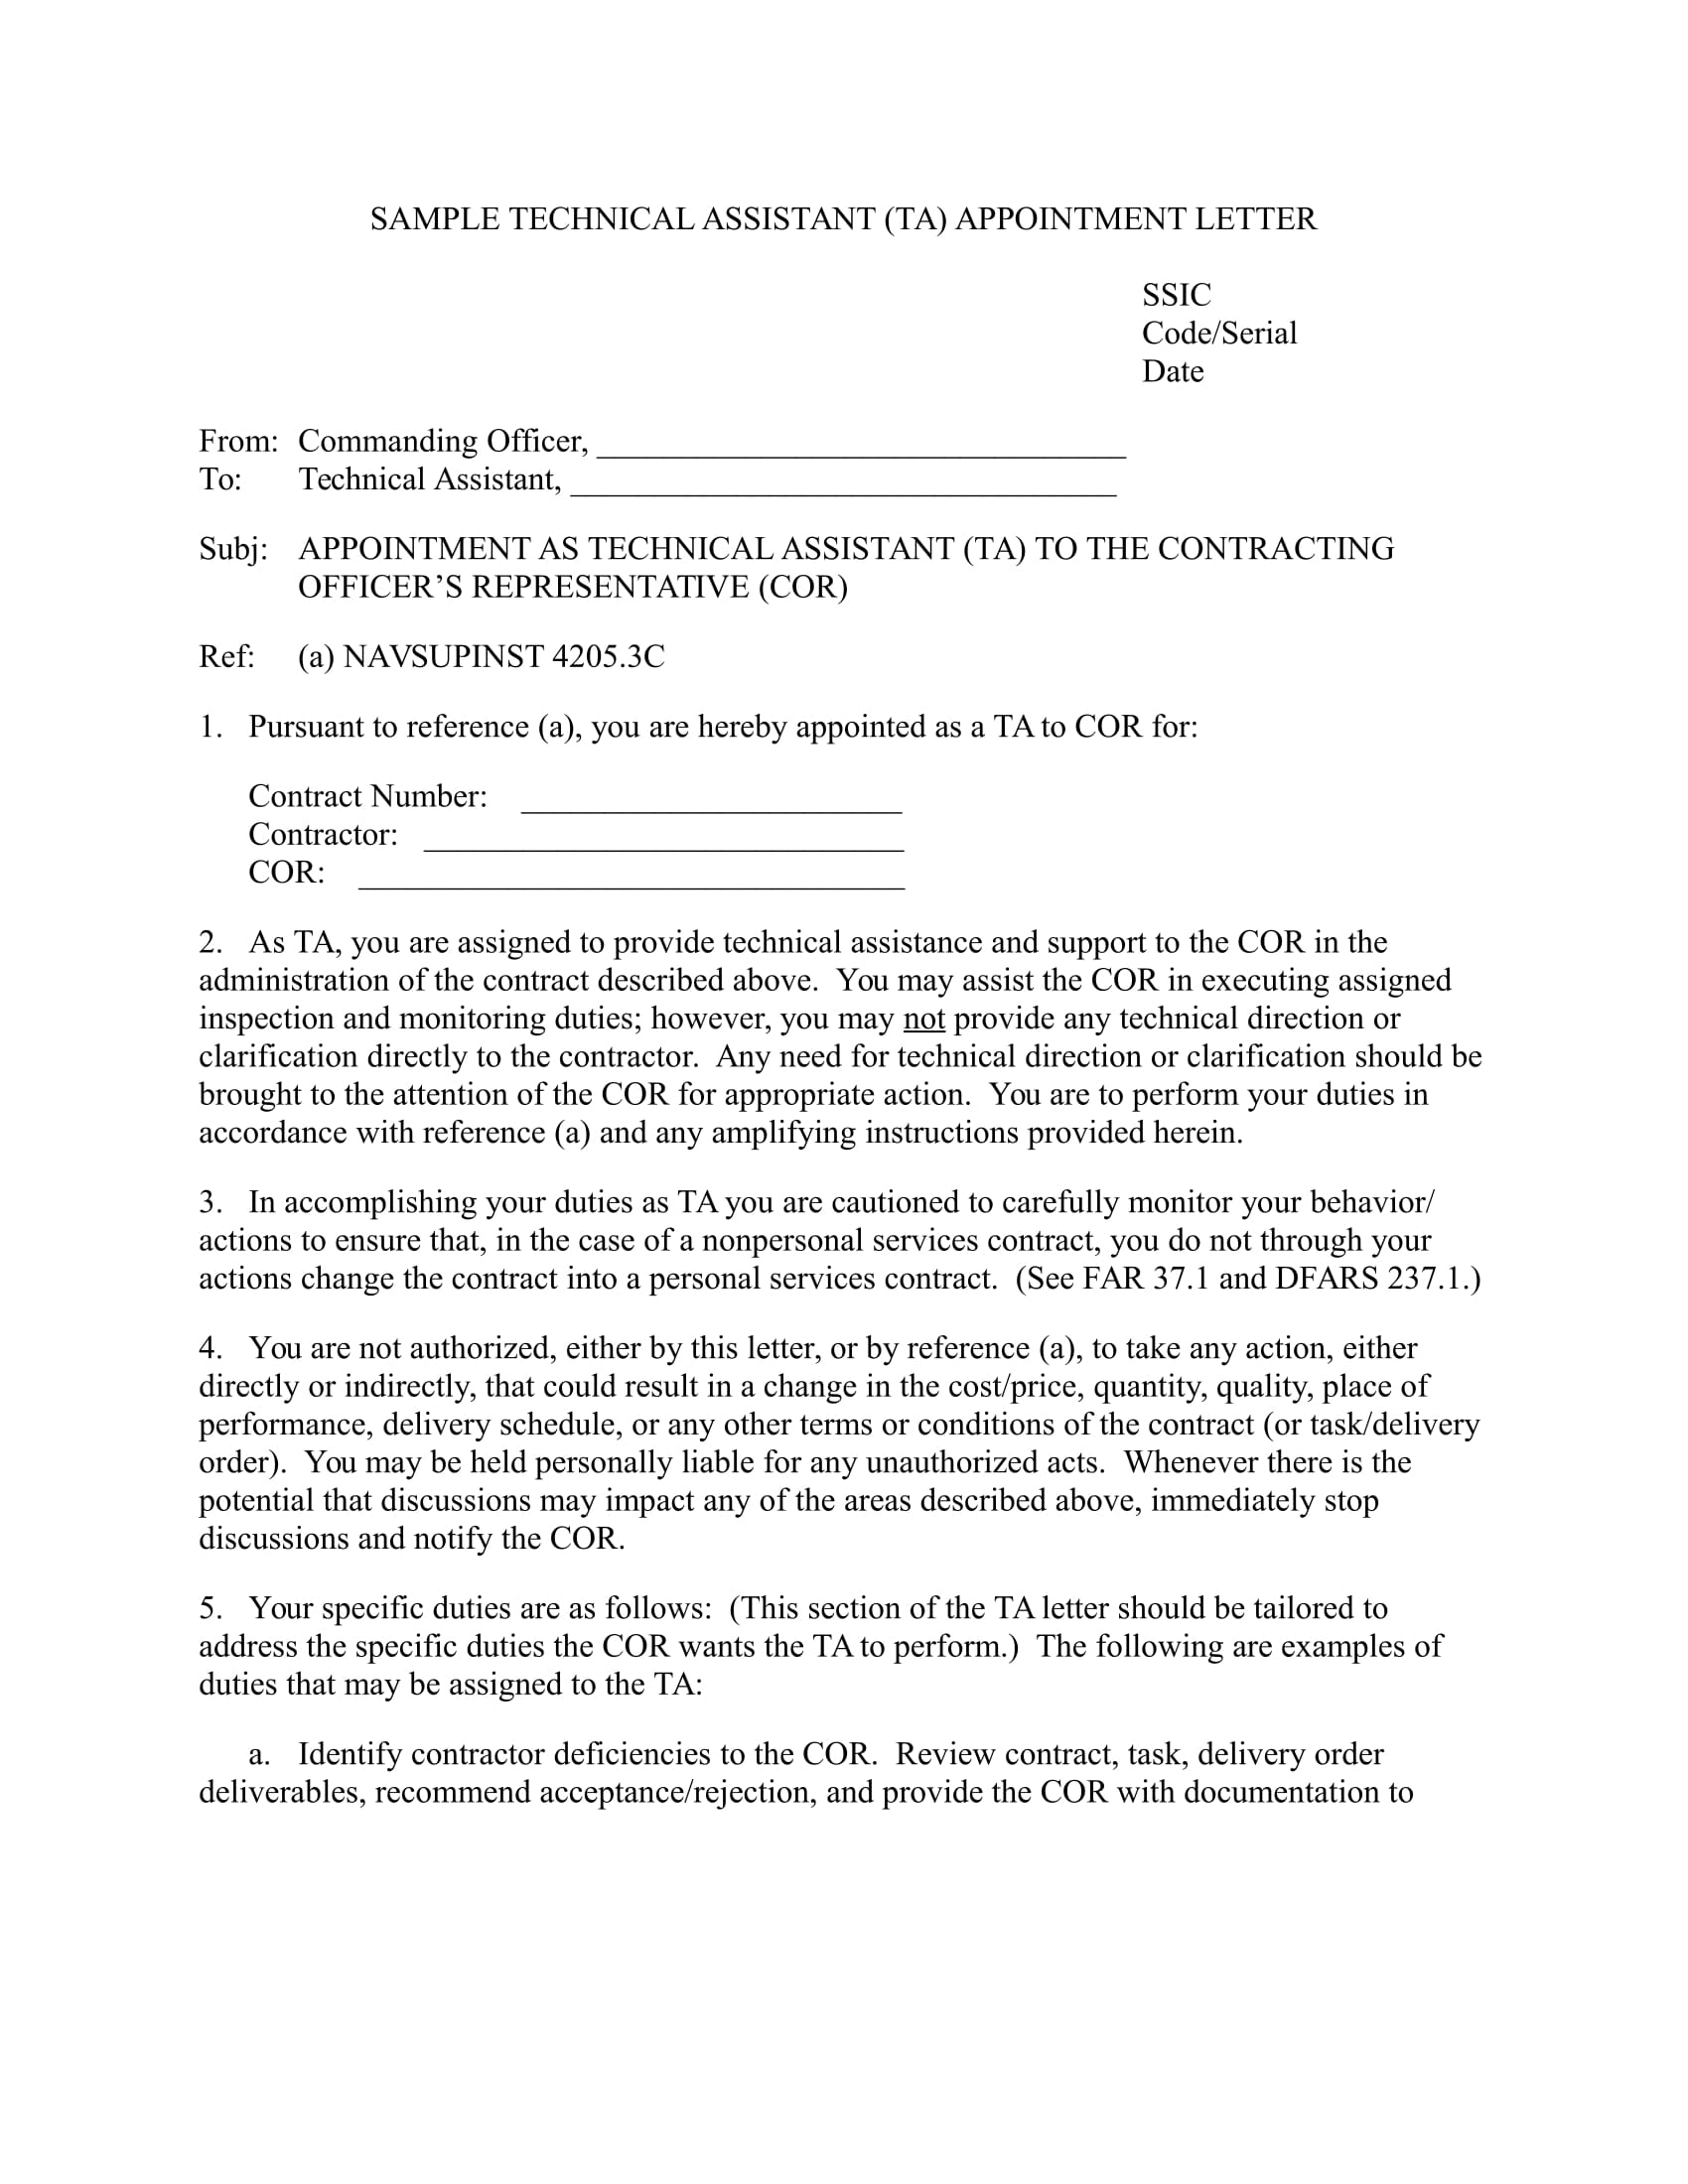 sample technical assistant appointment letter